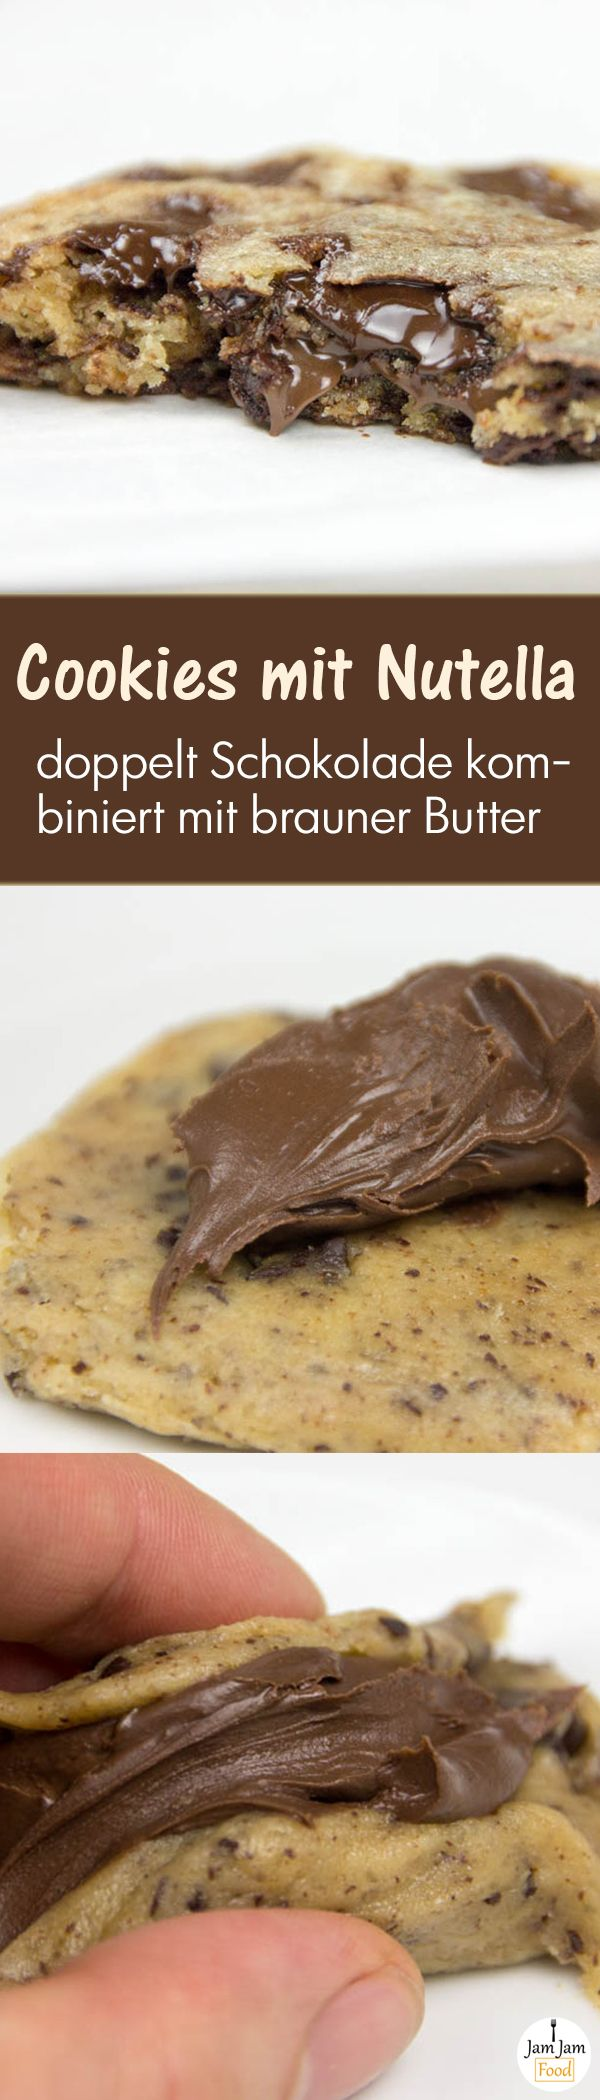 schokoladige american cookies mit brauner butter und nutella f llung kekse pinterest. Black Bedroom Furniture Sets. Home Design Ideas